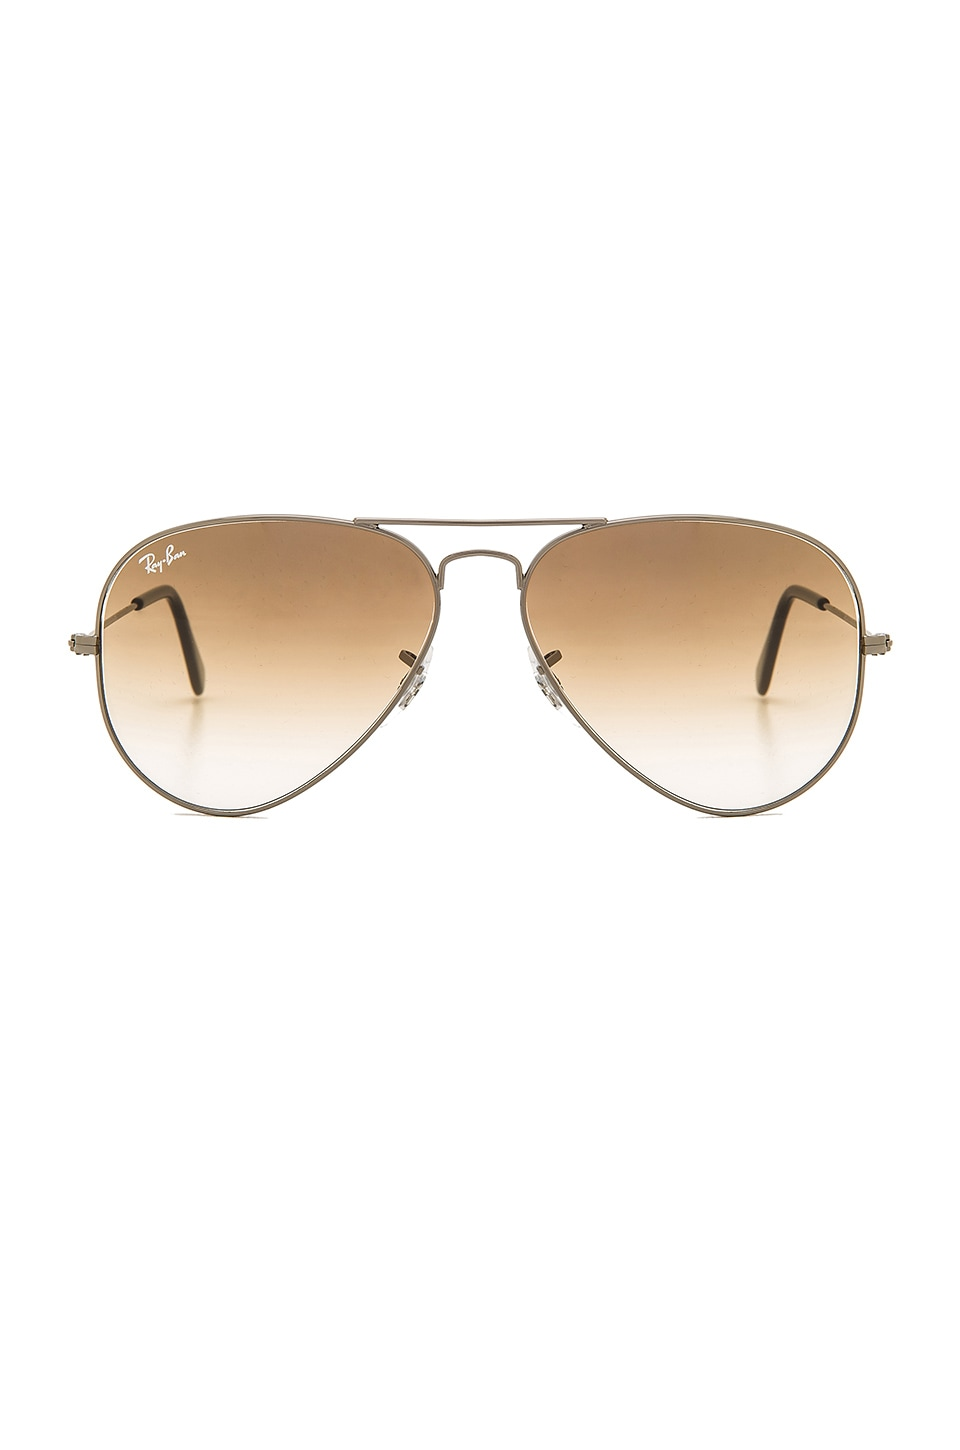 Ray-Ban Aviator in Gunmetal & Crystal Brown Gradient